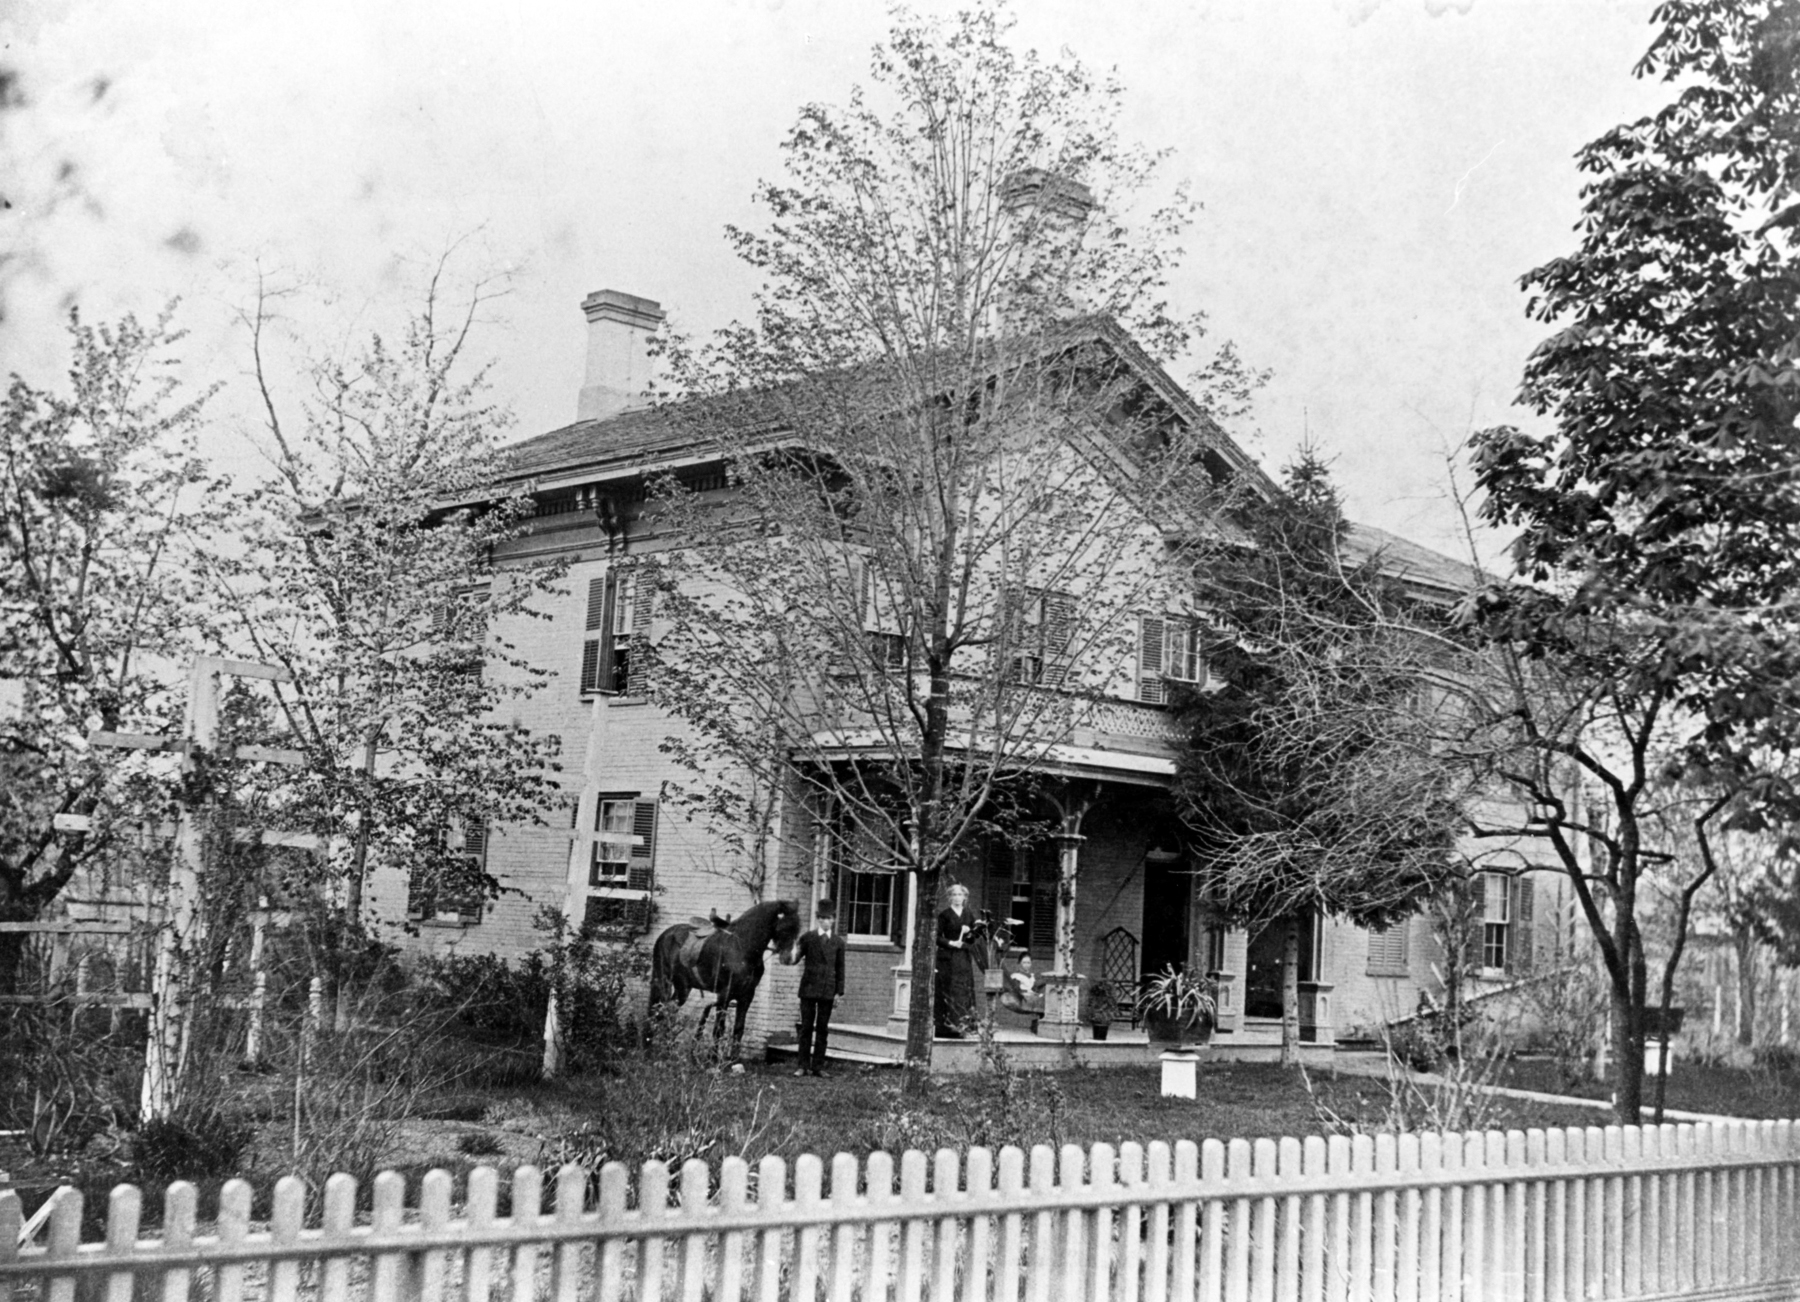 The Norris Home image